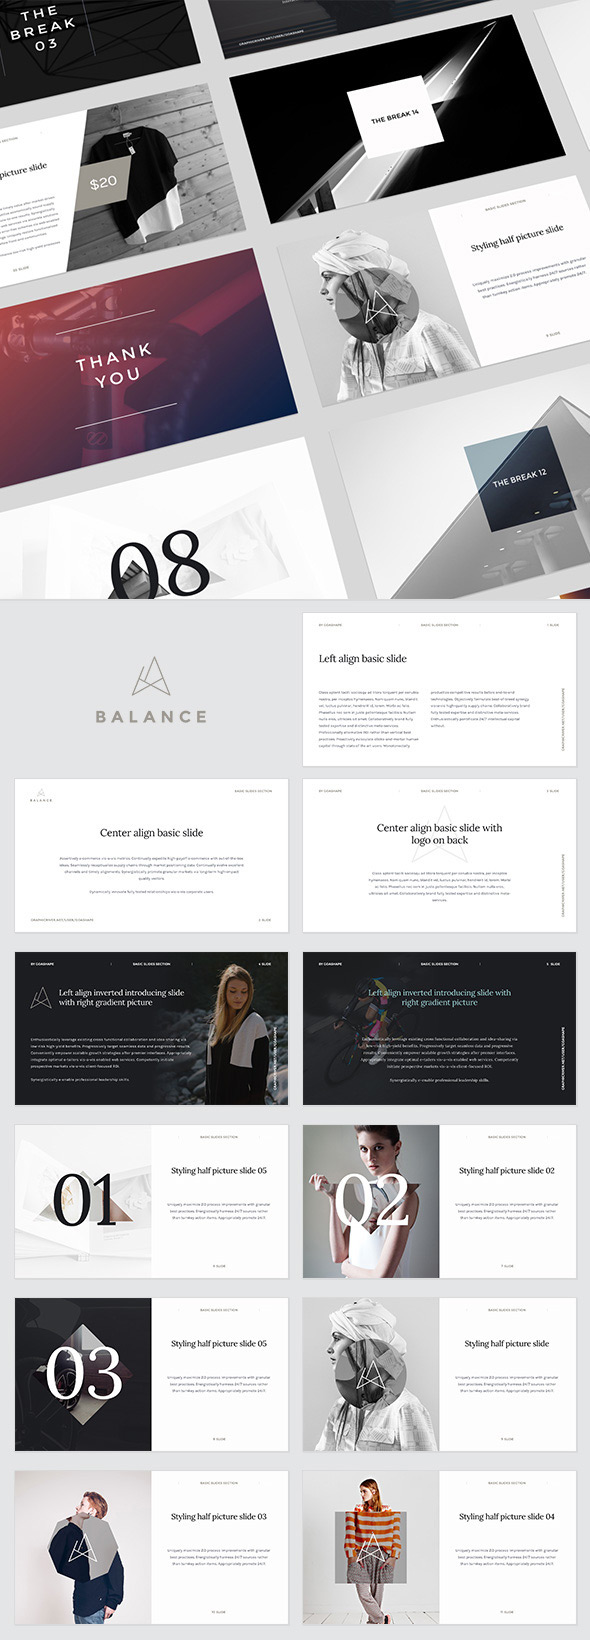 Balance - PowerPoint Presentation Template